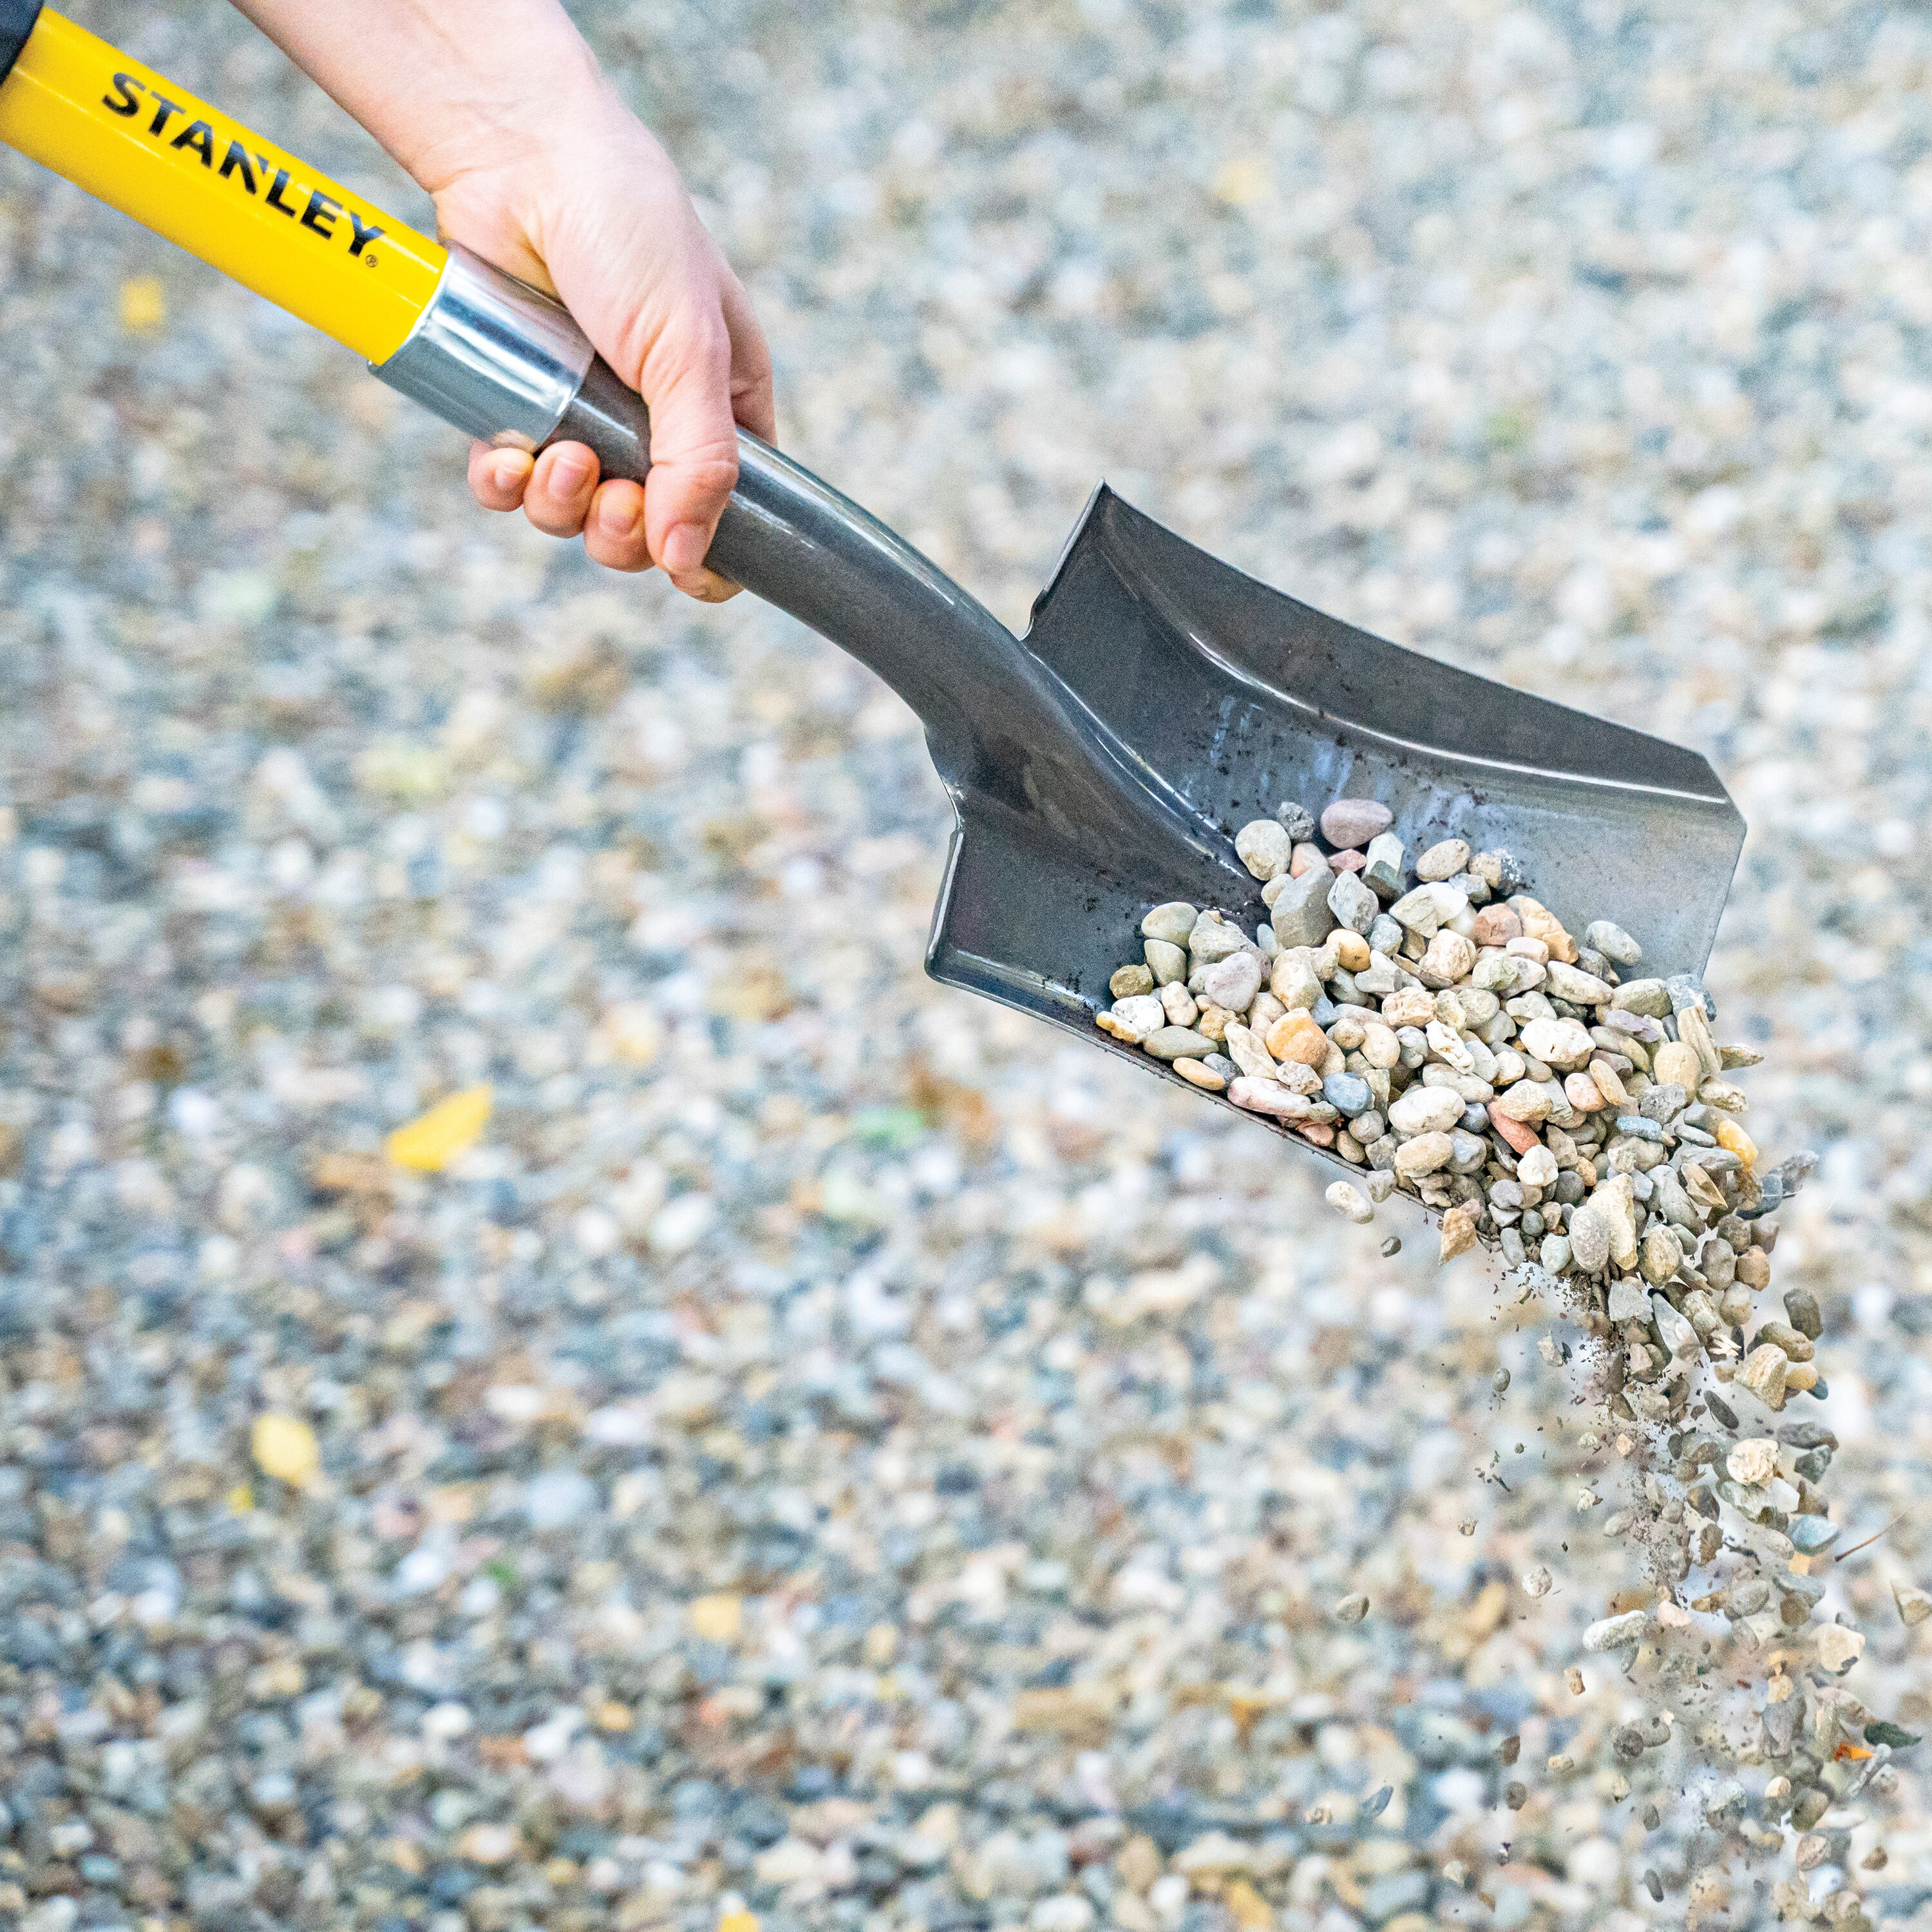 Stanley Tools - MiniD Square Head Shovel - BDS8088